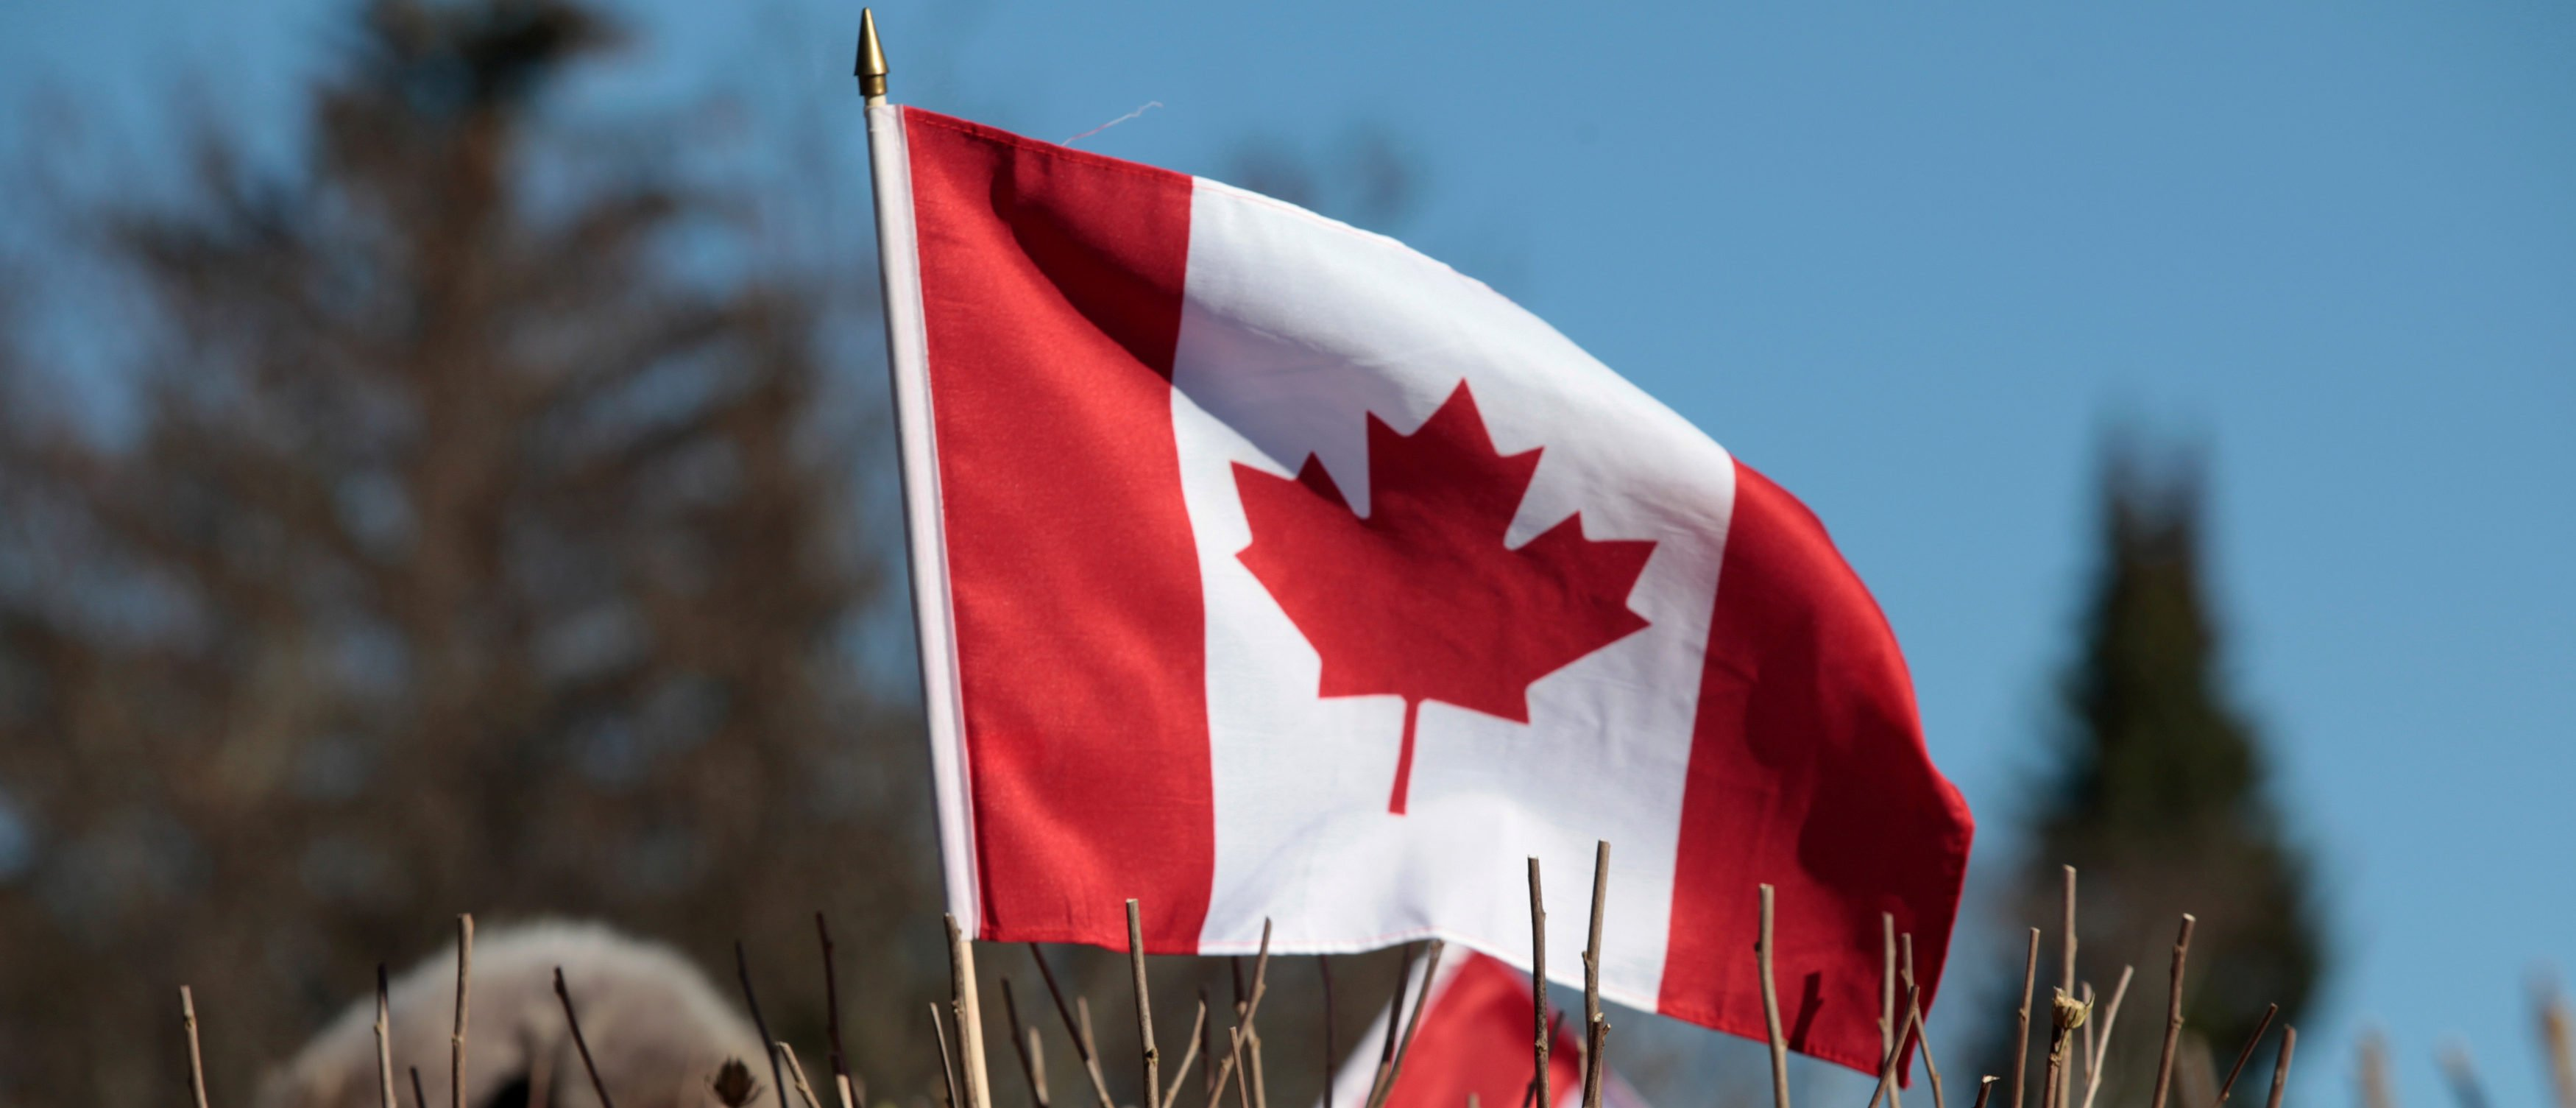 REPORT: No Warming Trend At Three-Quarters Of Canada's Long-Term Weather Stations